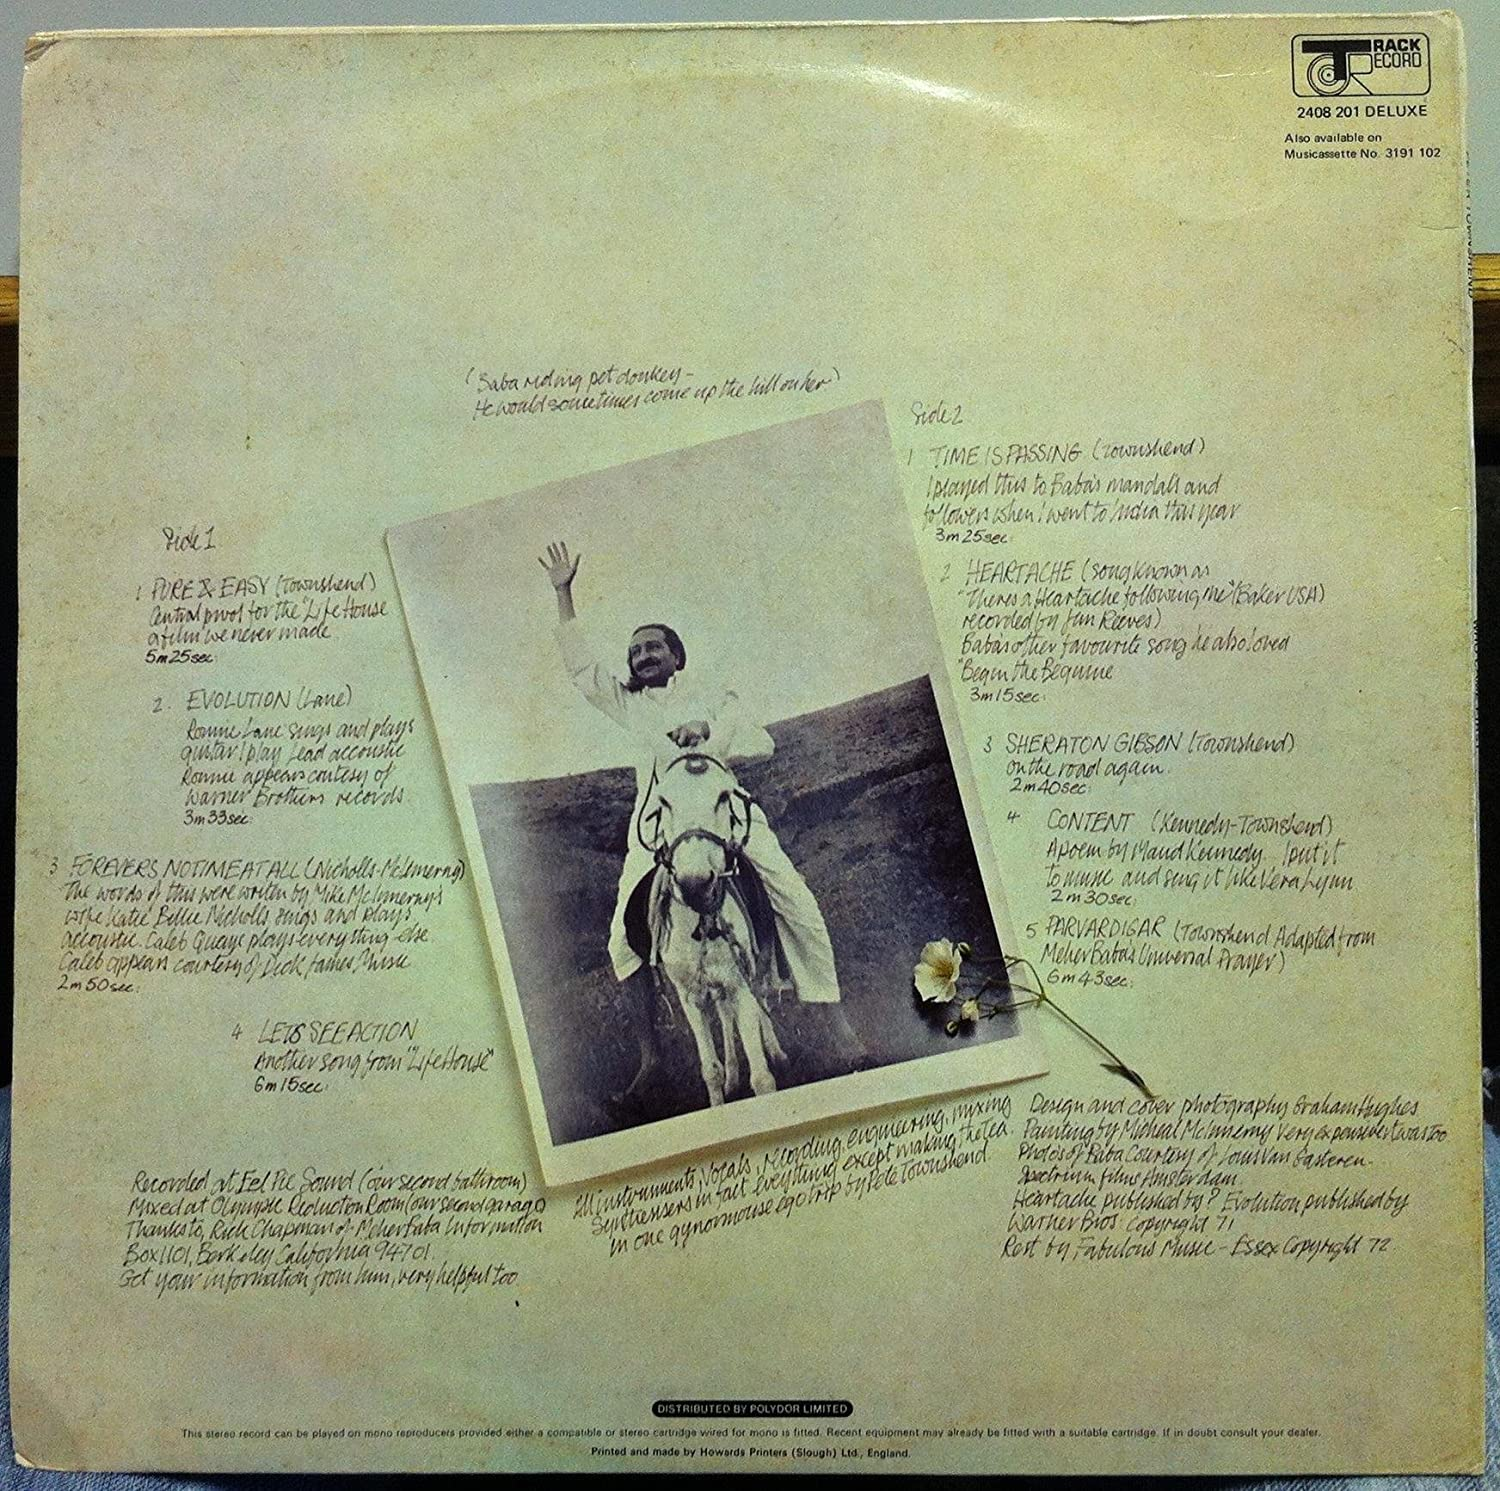 - PETE TOWNSHEND WHO CAME FIRST vinyl record - Amazon.com Music